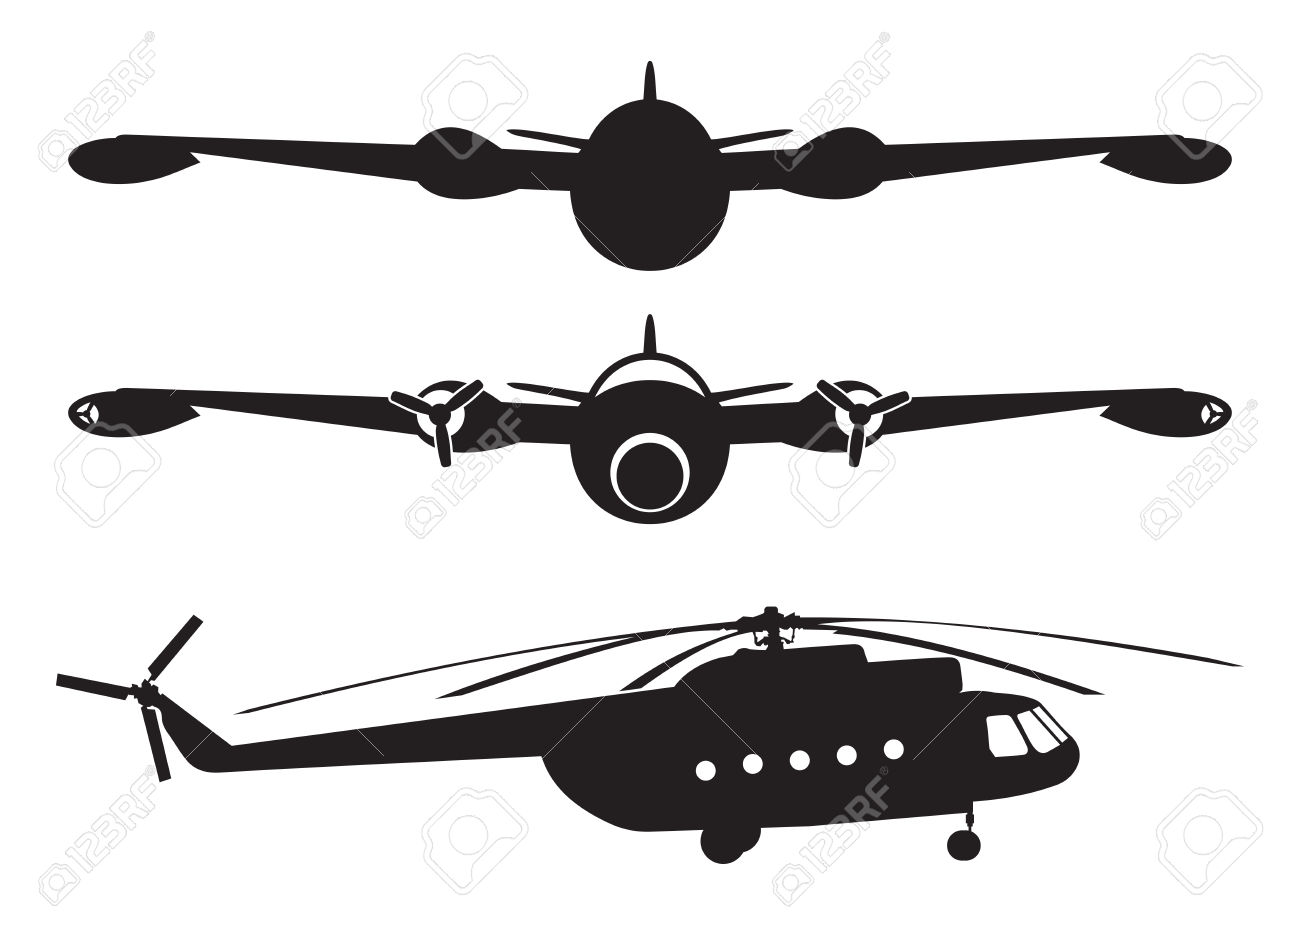 Rotor Plane Clipart 20 Free Cliparts